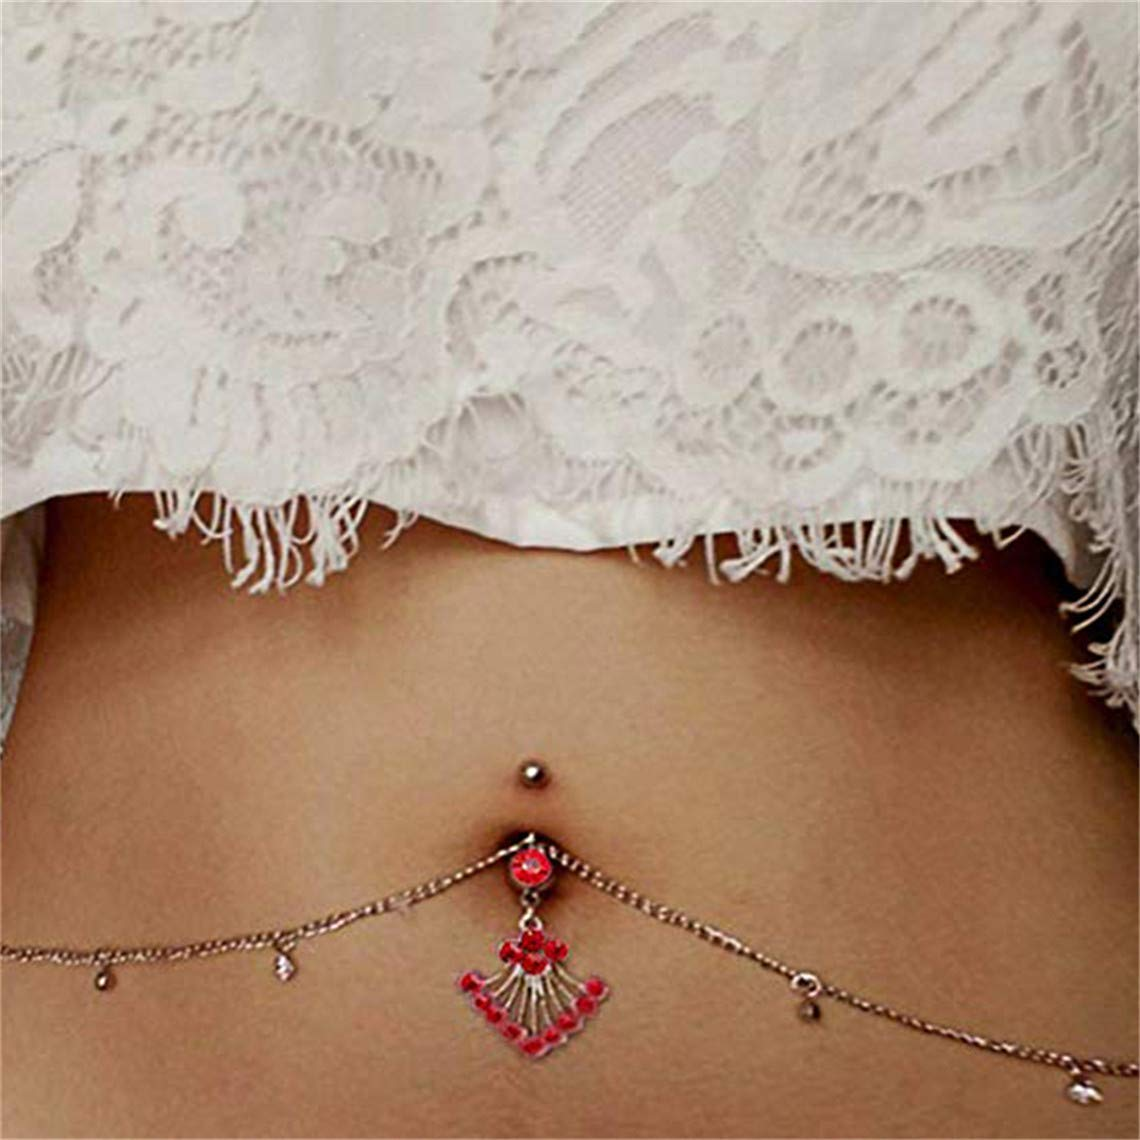 Rurah Women Rhinestone Tassel Dangle Belly Button Ring Body Piercing Jewelry, Navel Ring with Waist Chain for Dancing, Party, Beach,Red